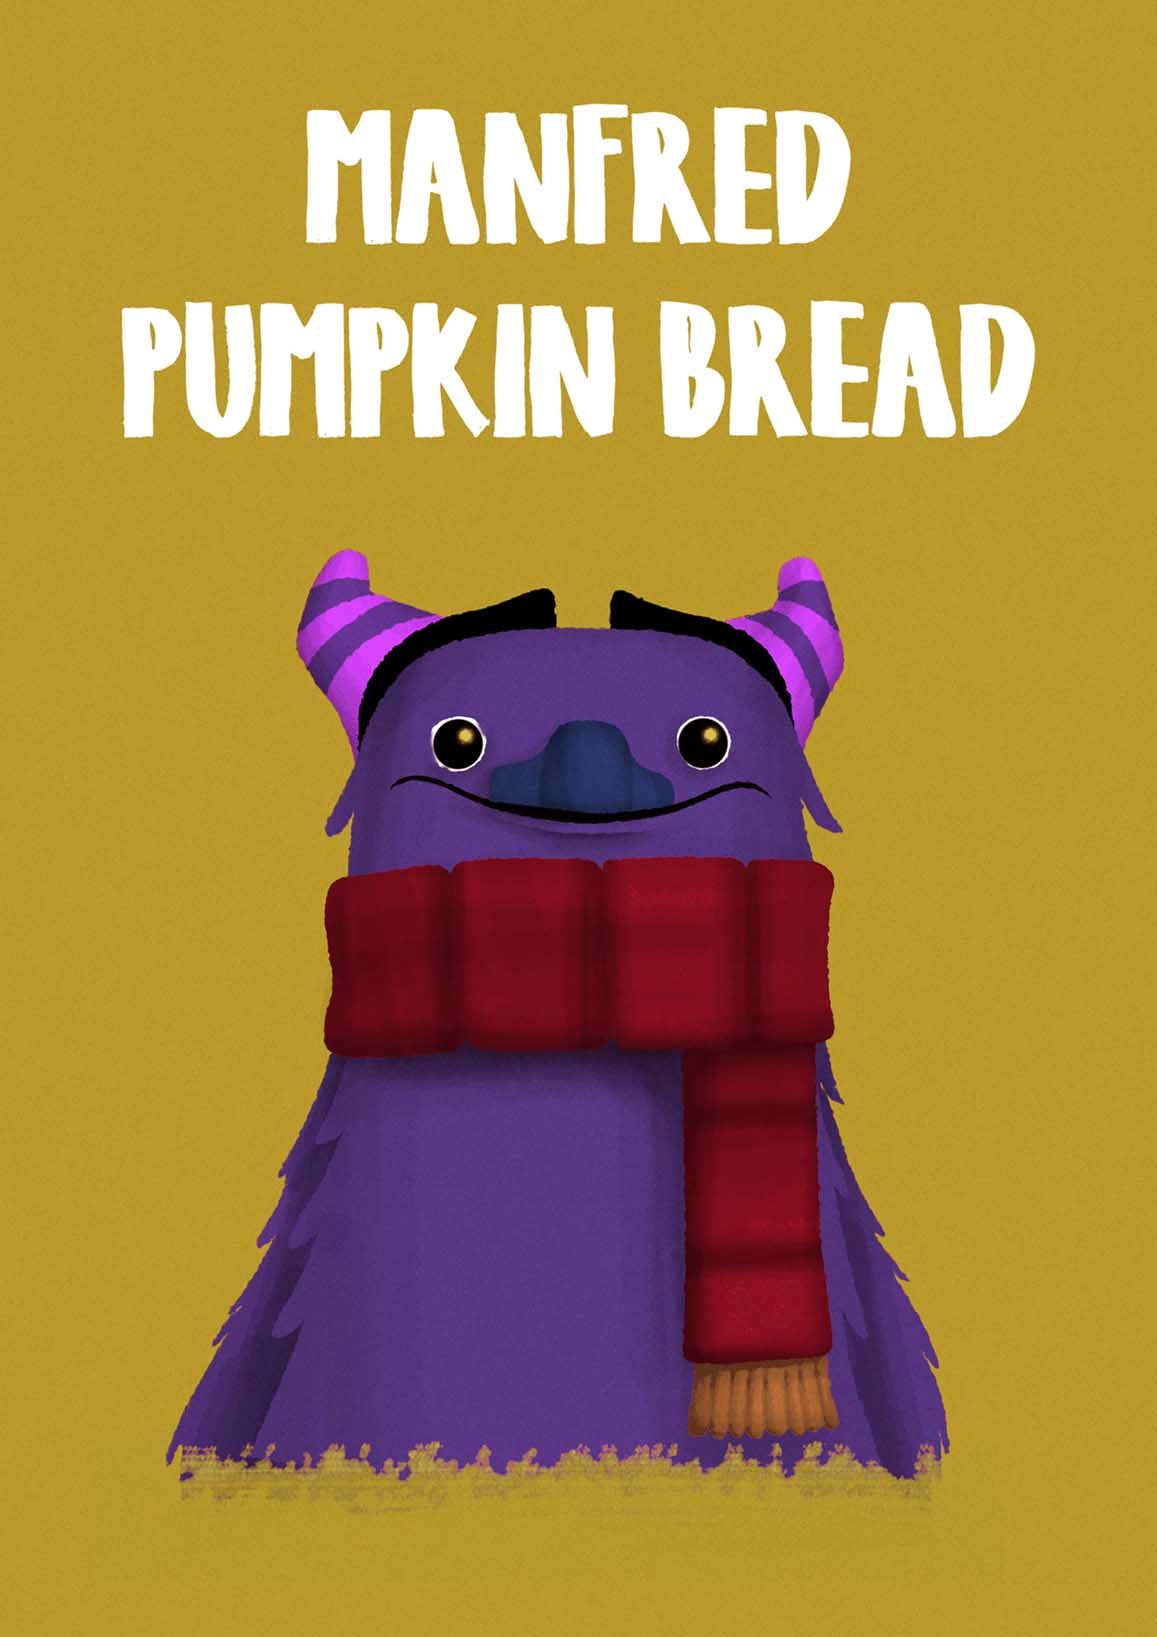 Manfred Pumpkin Bread 360 VR virtual reality puppet film poster